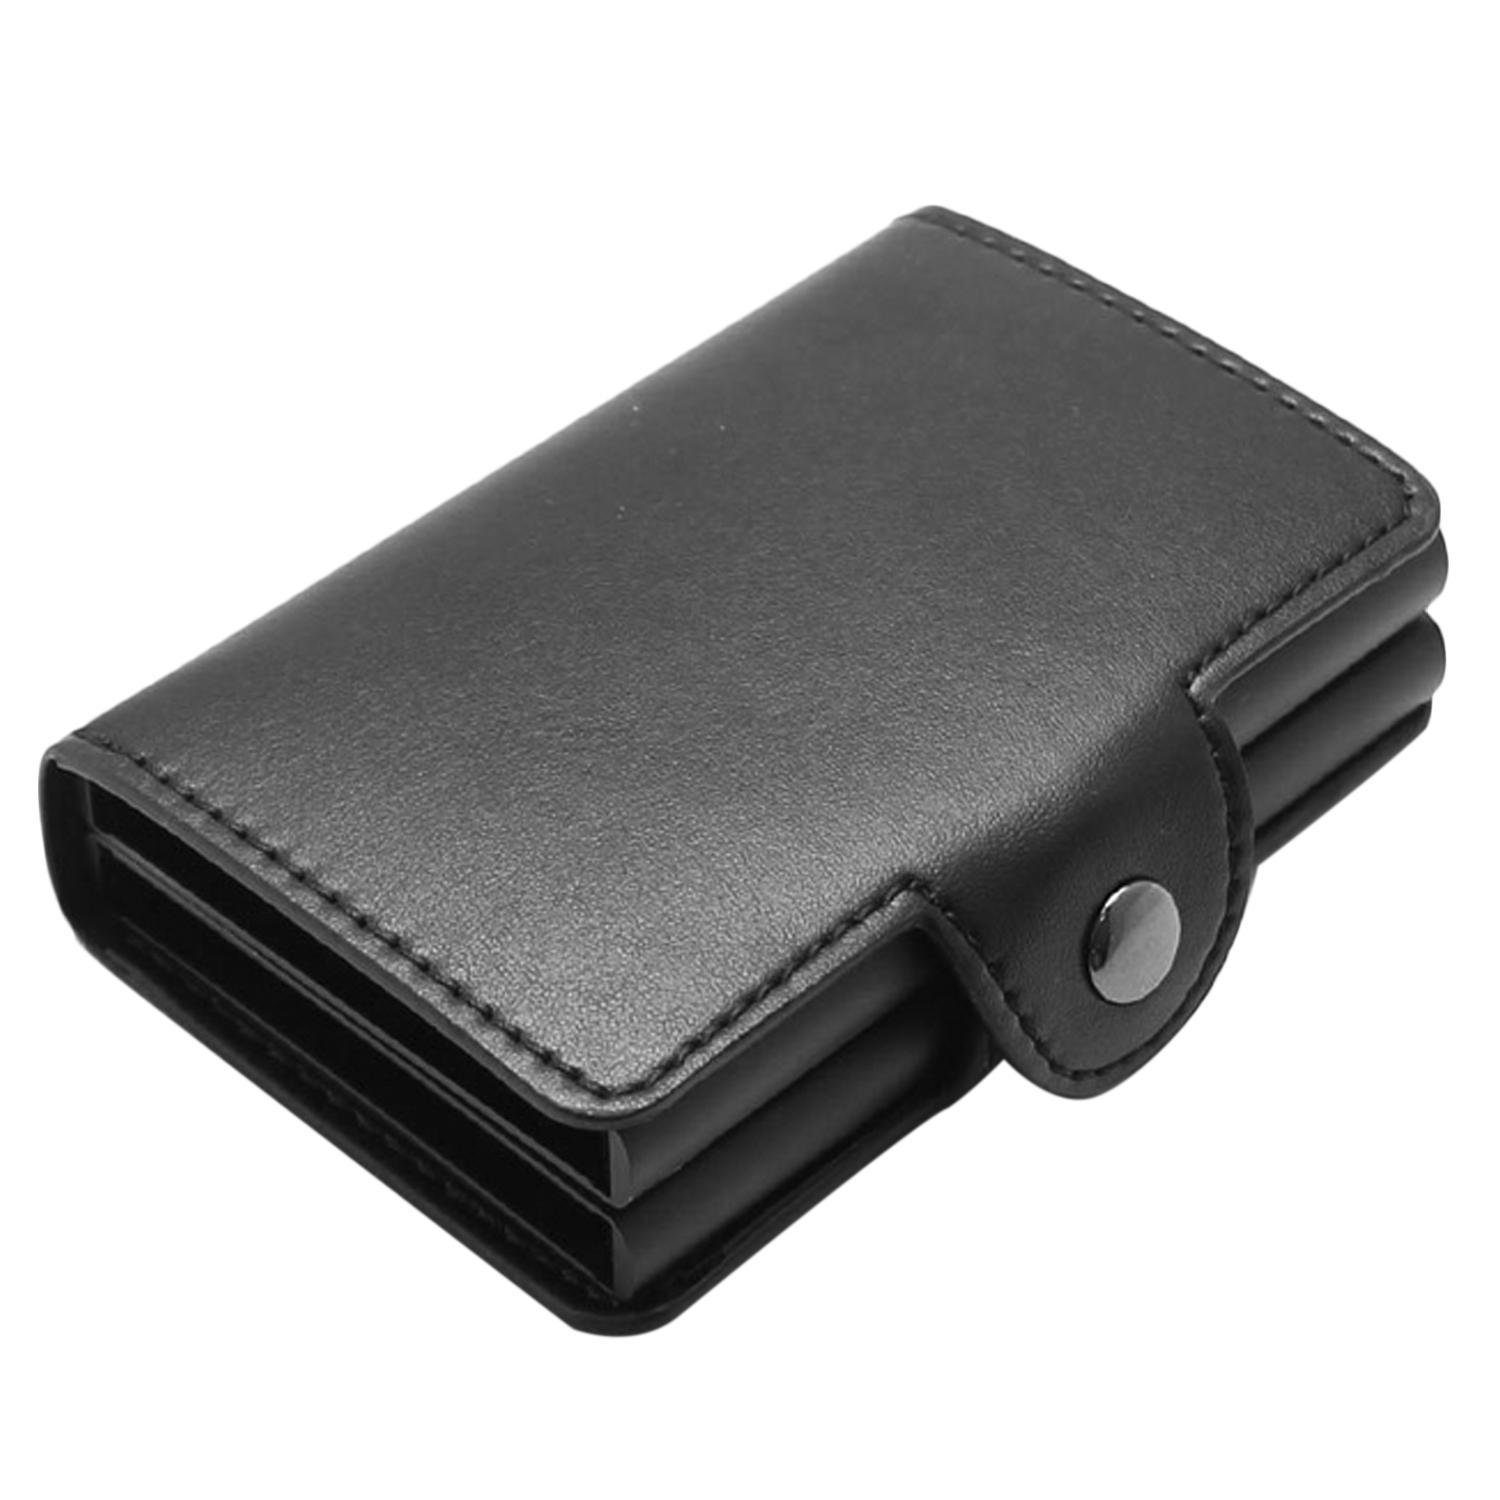 38a4edcec393 Automatic Pop Up RFID Blocking Anti-theft Microfiber Leather Card Wallets  Holder Case for Men Women Business Credit ID Gift Card (Black)